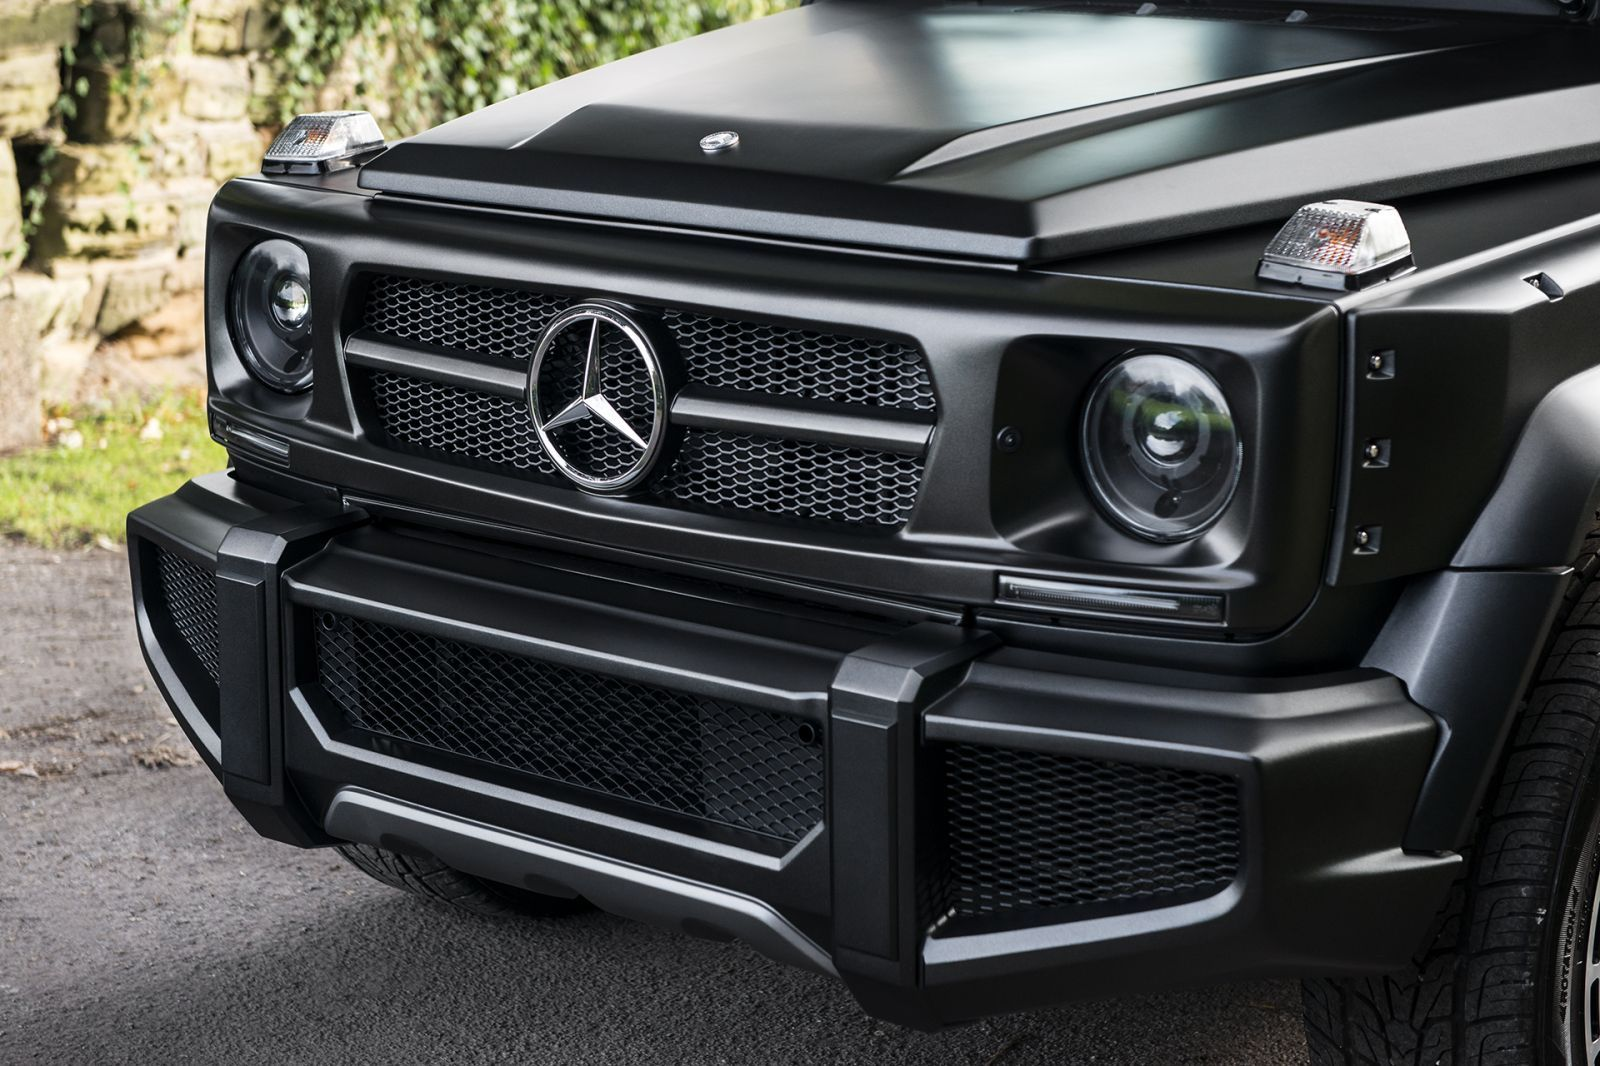 Mercedes G-Wagon (1990-2018) Vented Front Bumper Image 5139